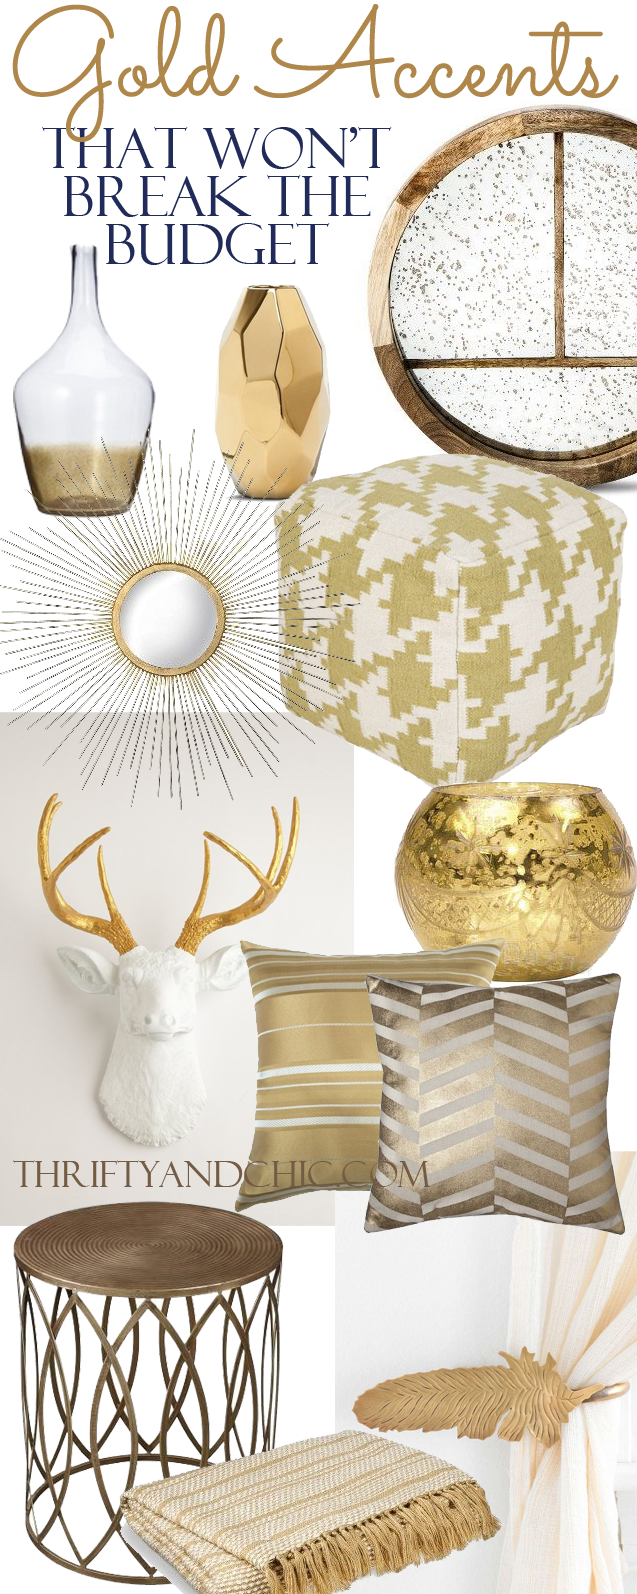 18 gold home decor pieces that wont breat the budget. Divided up into price!